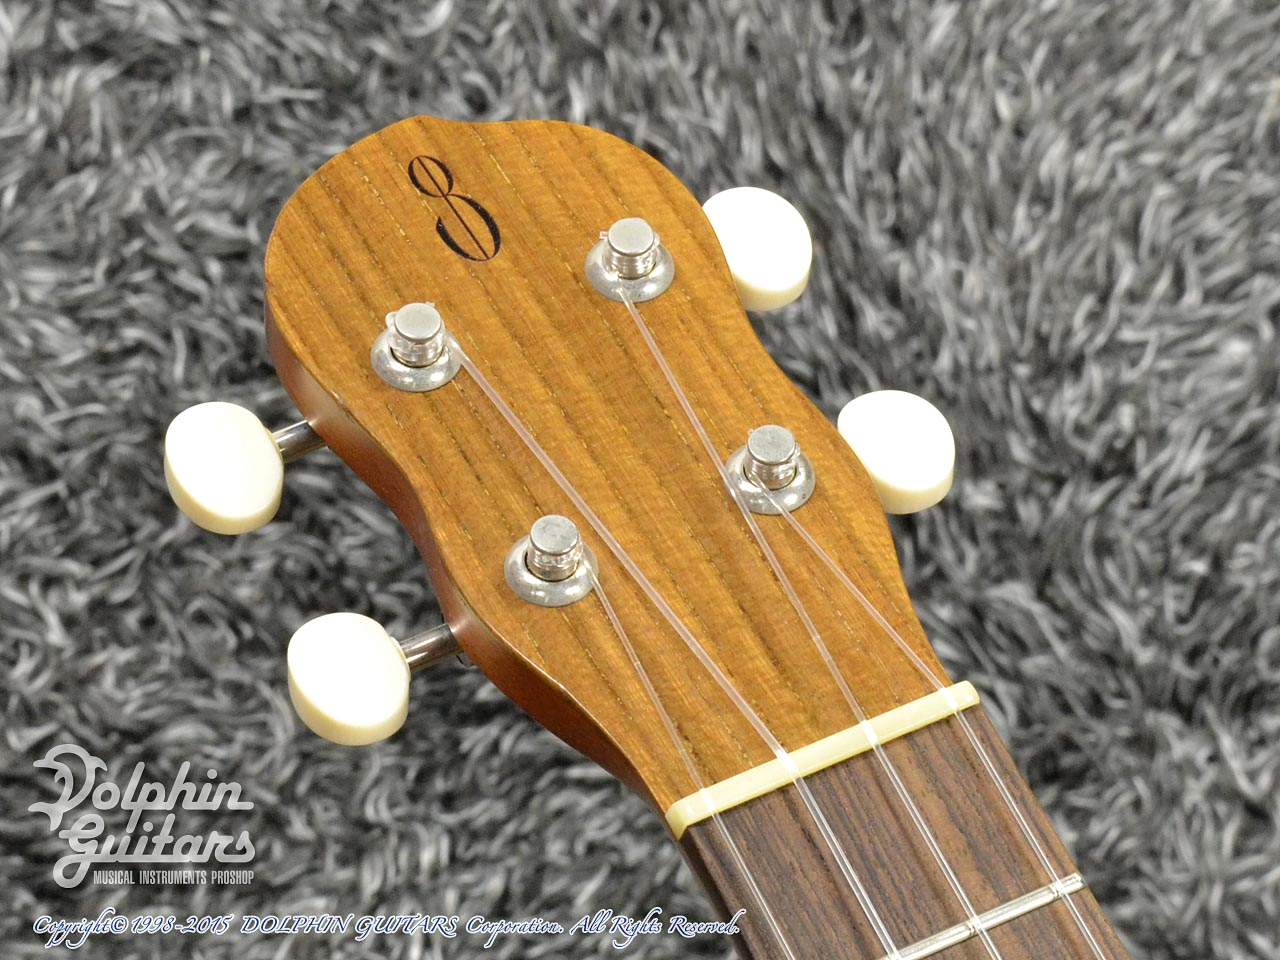 BLUE STRINGS: T414 (6)